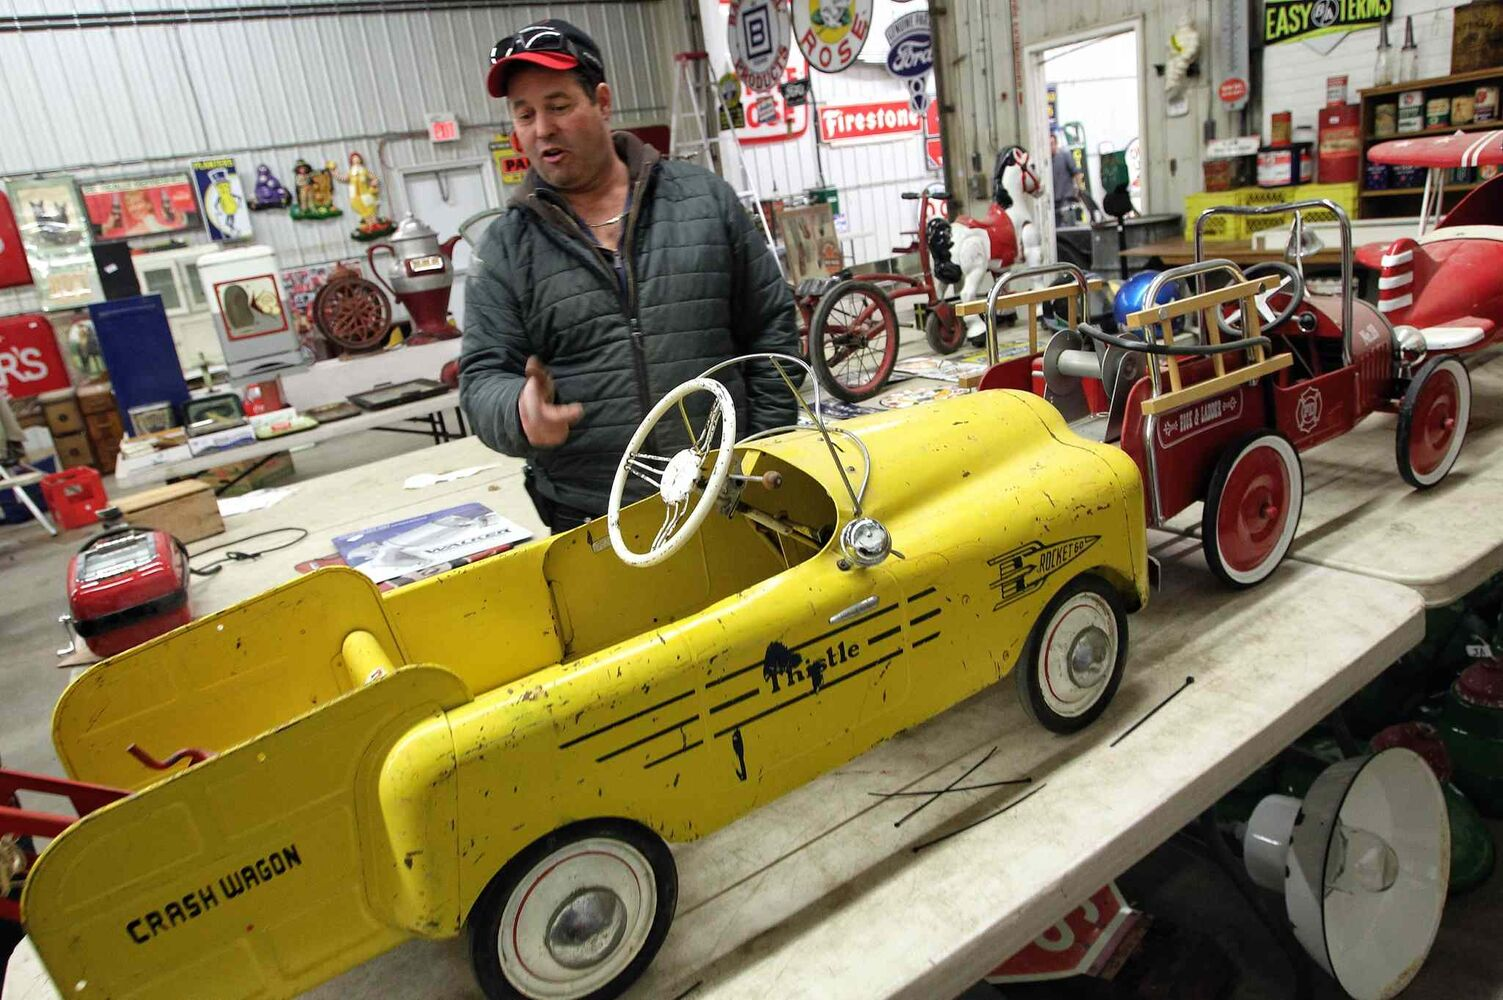 Auctioneer Stuart McSherry checks out the Thistle Crash Wagon, an old miniature car.